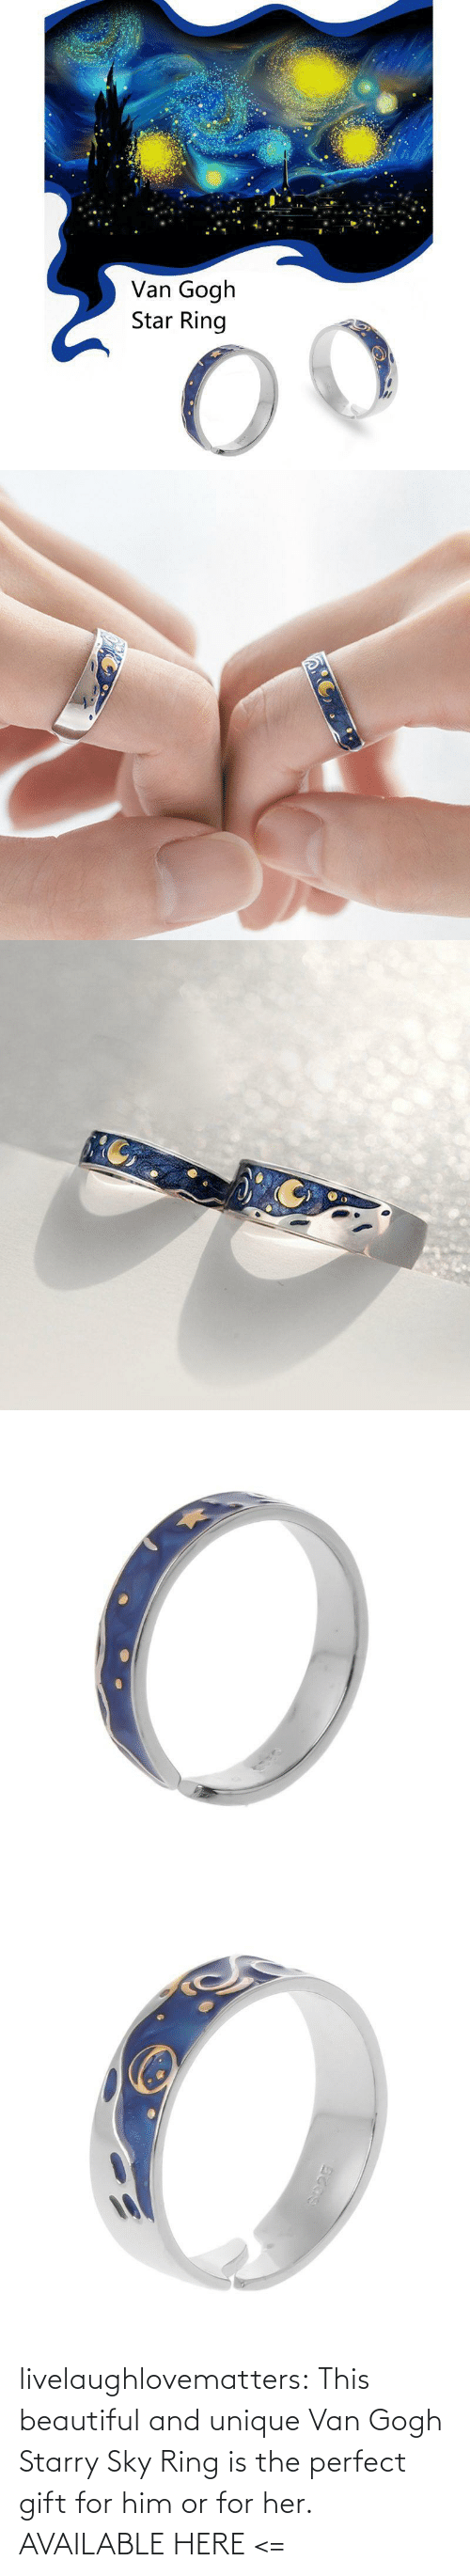 For Her: livelaughlovematters:  This beautiful and unique Van Gogh Starry Sky Ring is the perfect gift for him or for her. AVAILABLE HERE <=